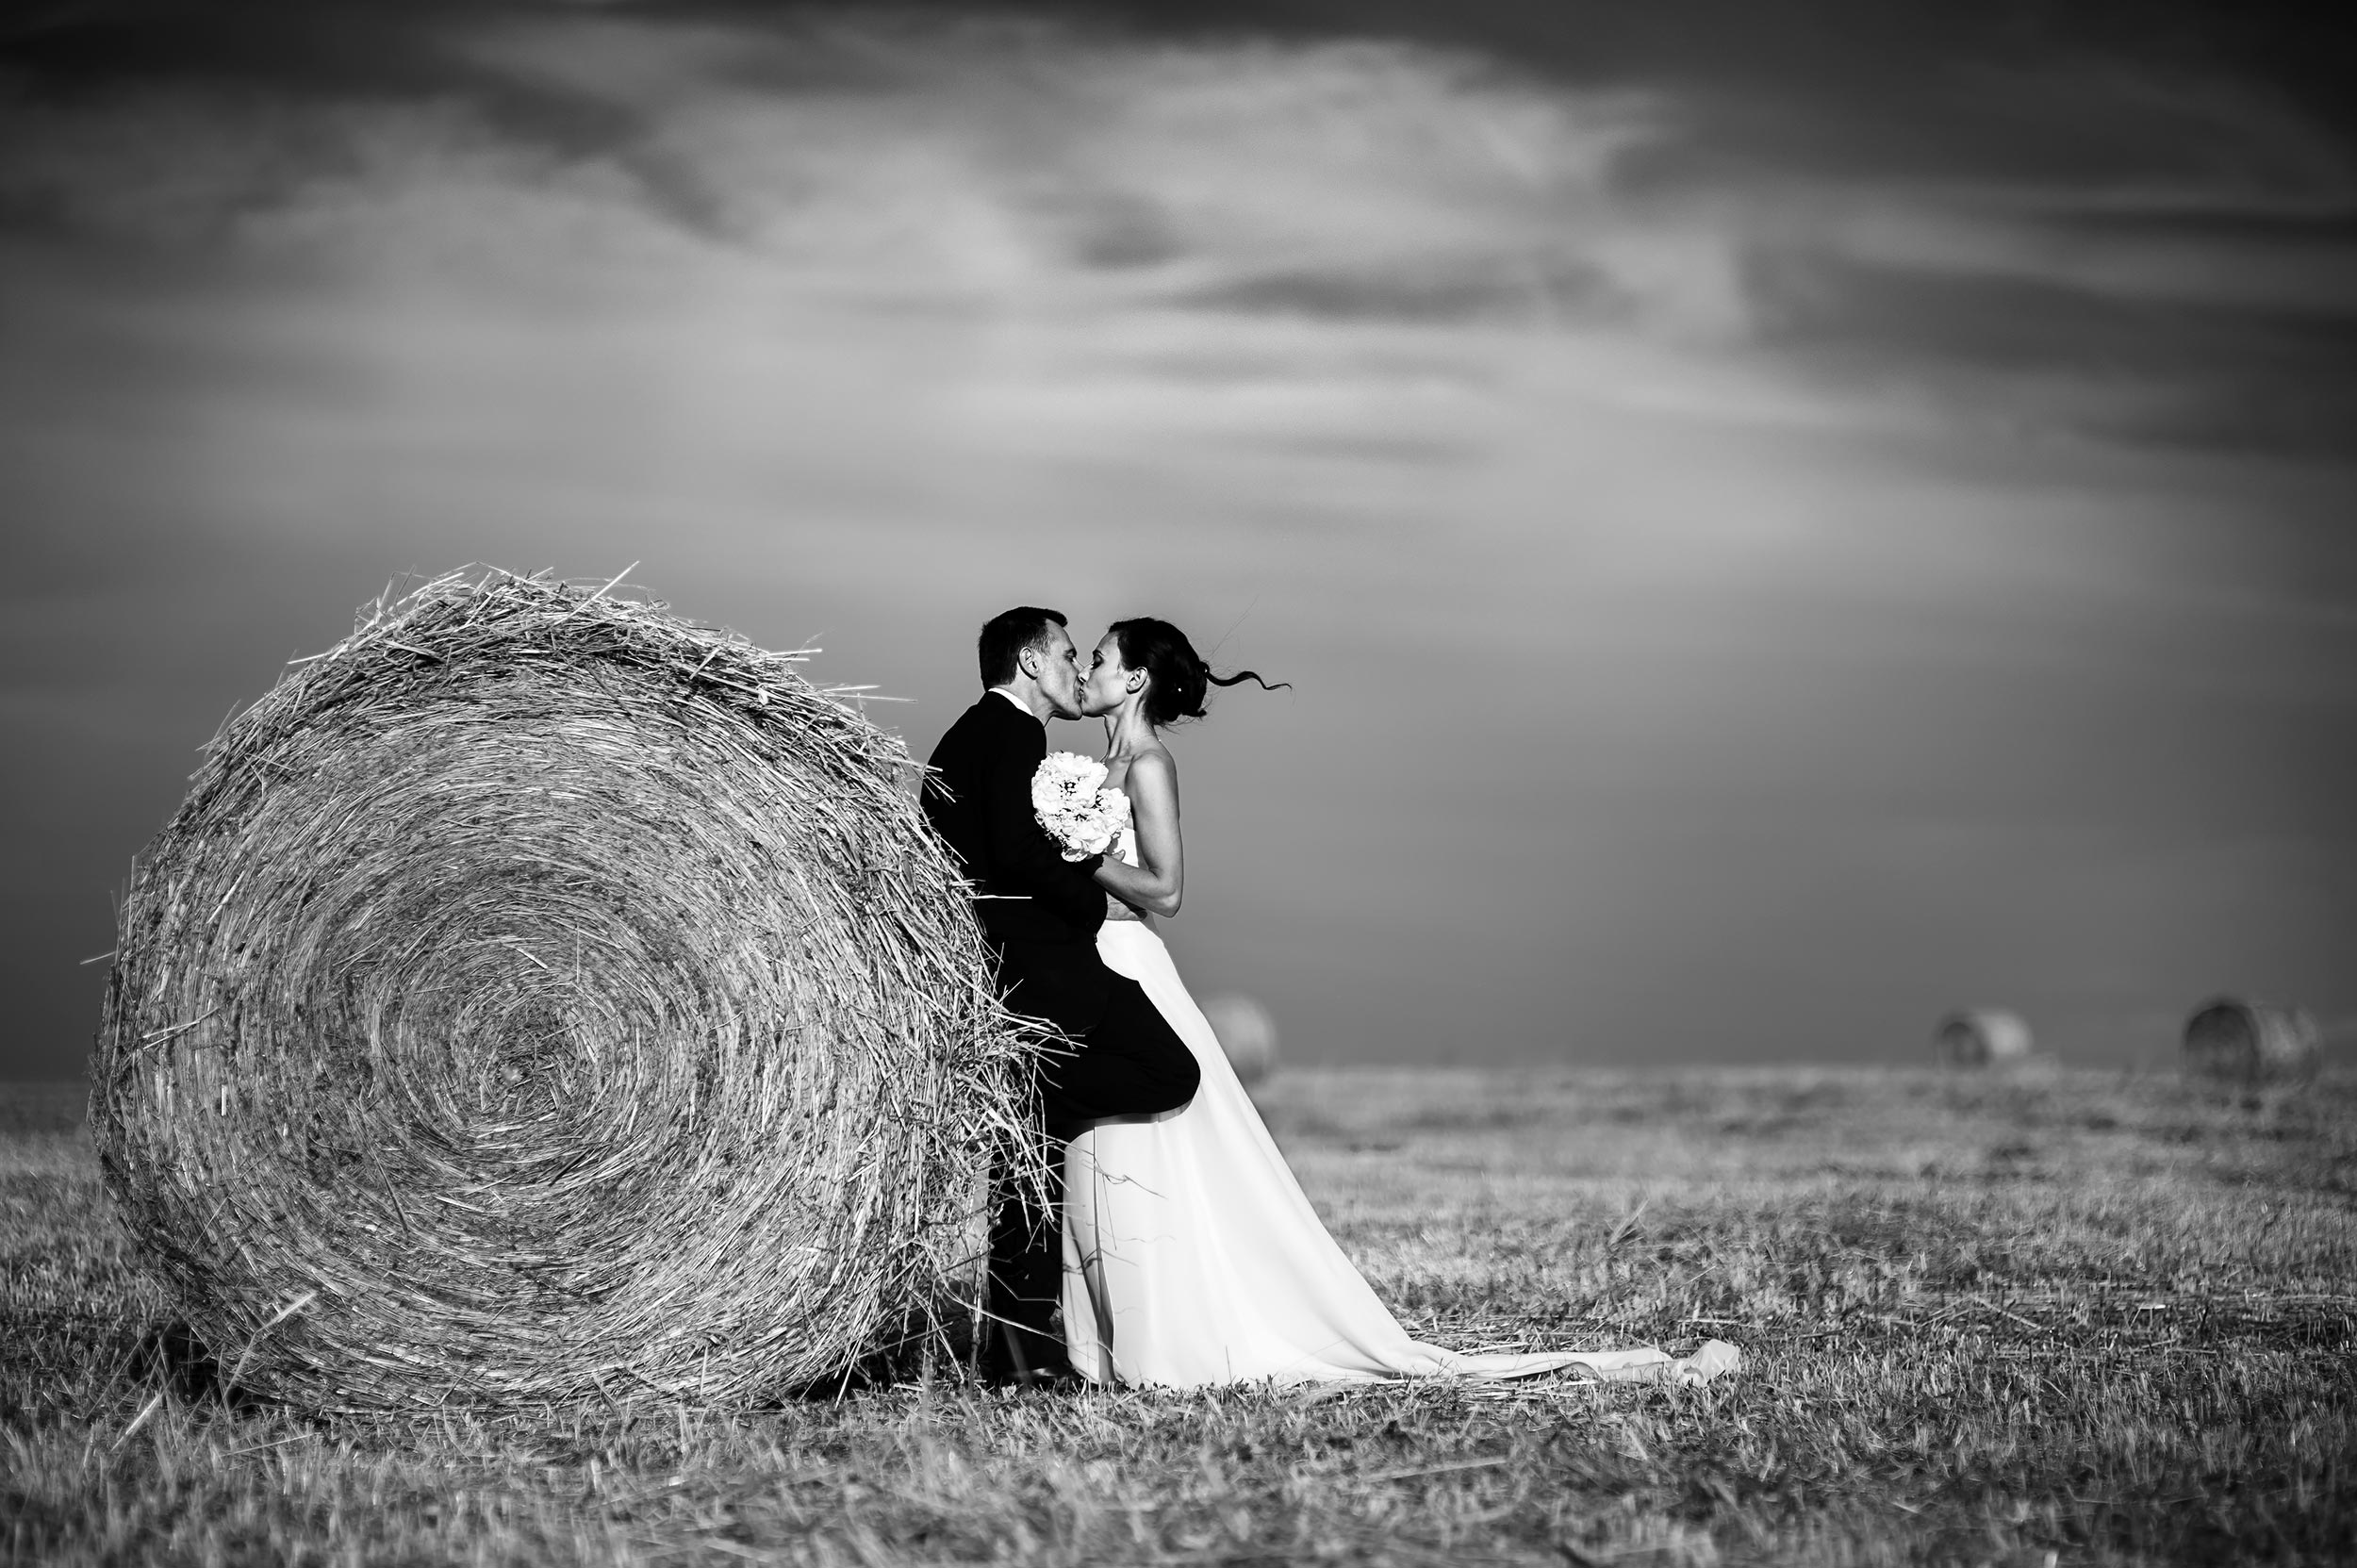 hay-bales-bride-and-groom-italy-countryside-black-and-white-wedding-photography.jpg